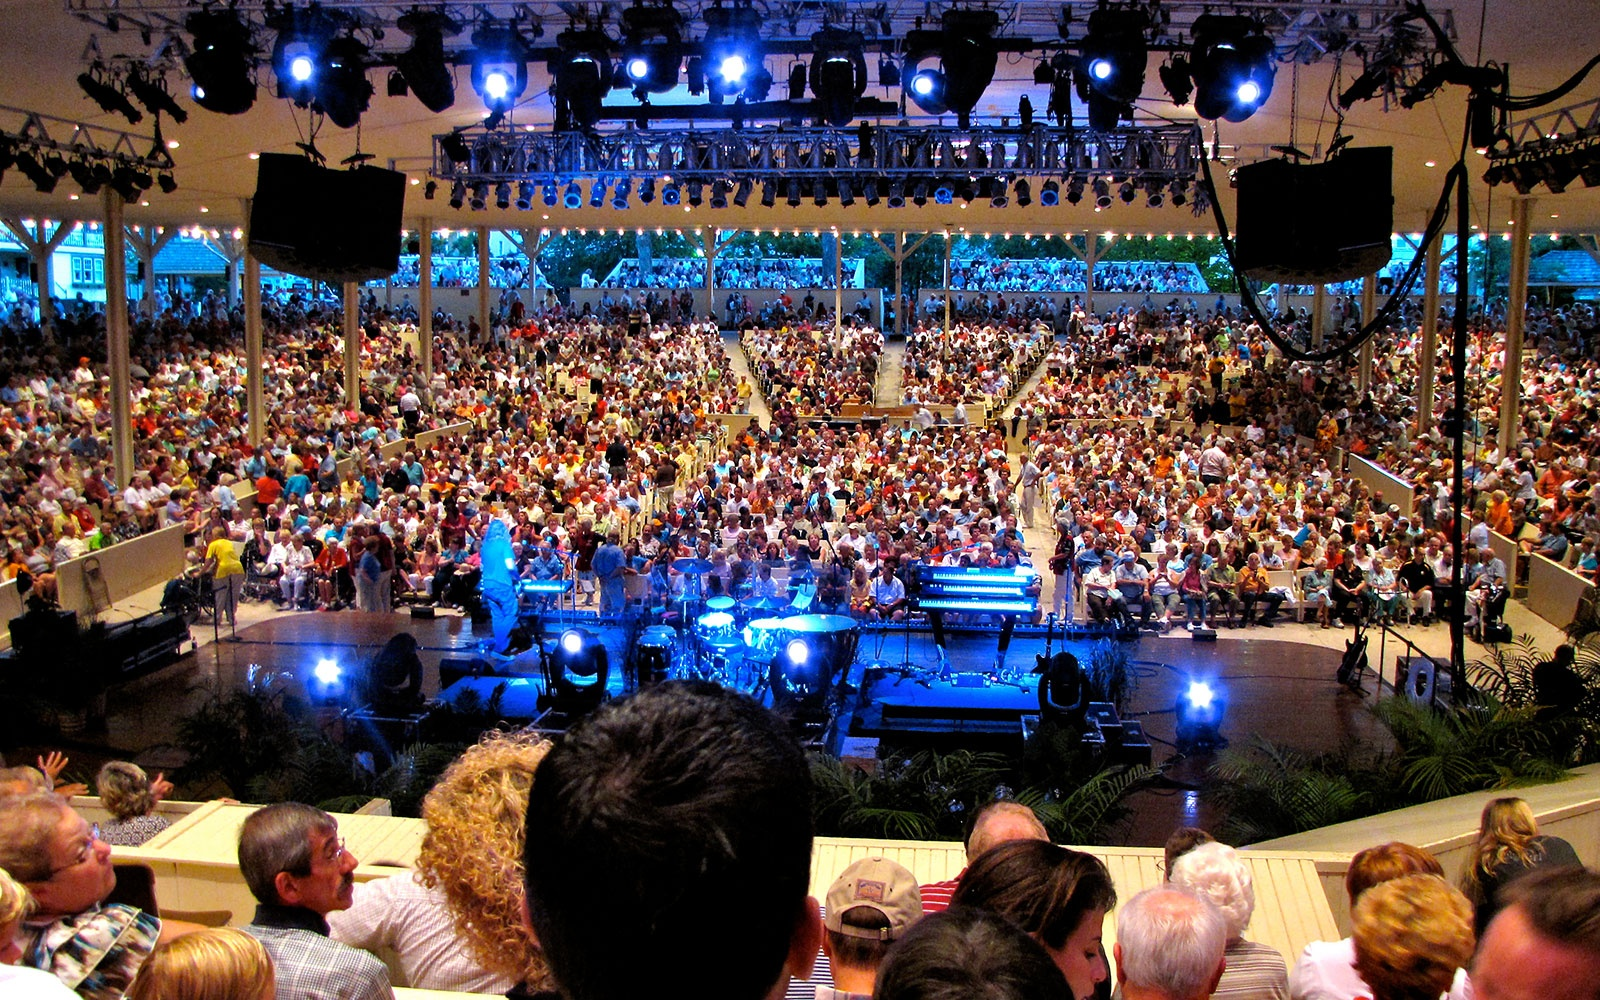 Chautauqua Amphitheater in Chautauqua, New York